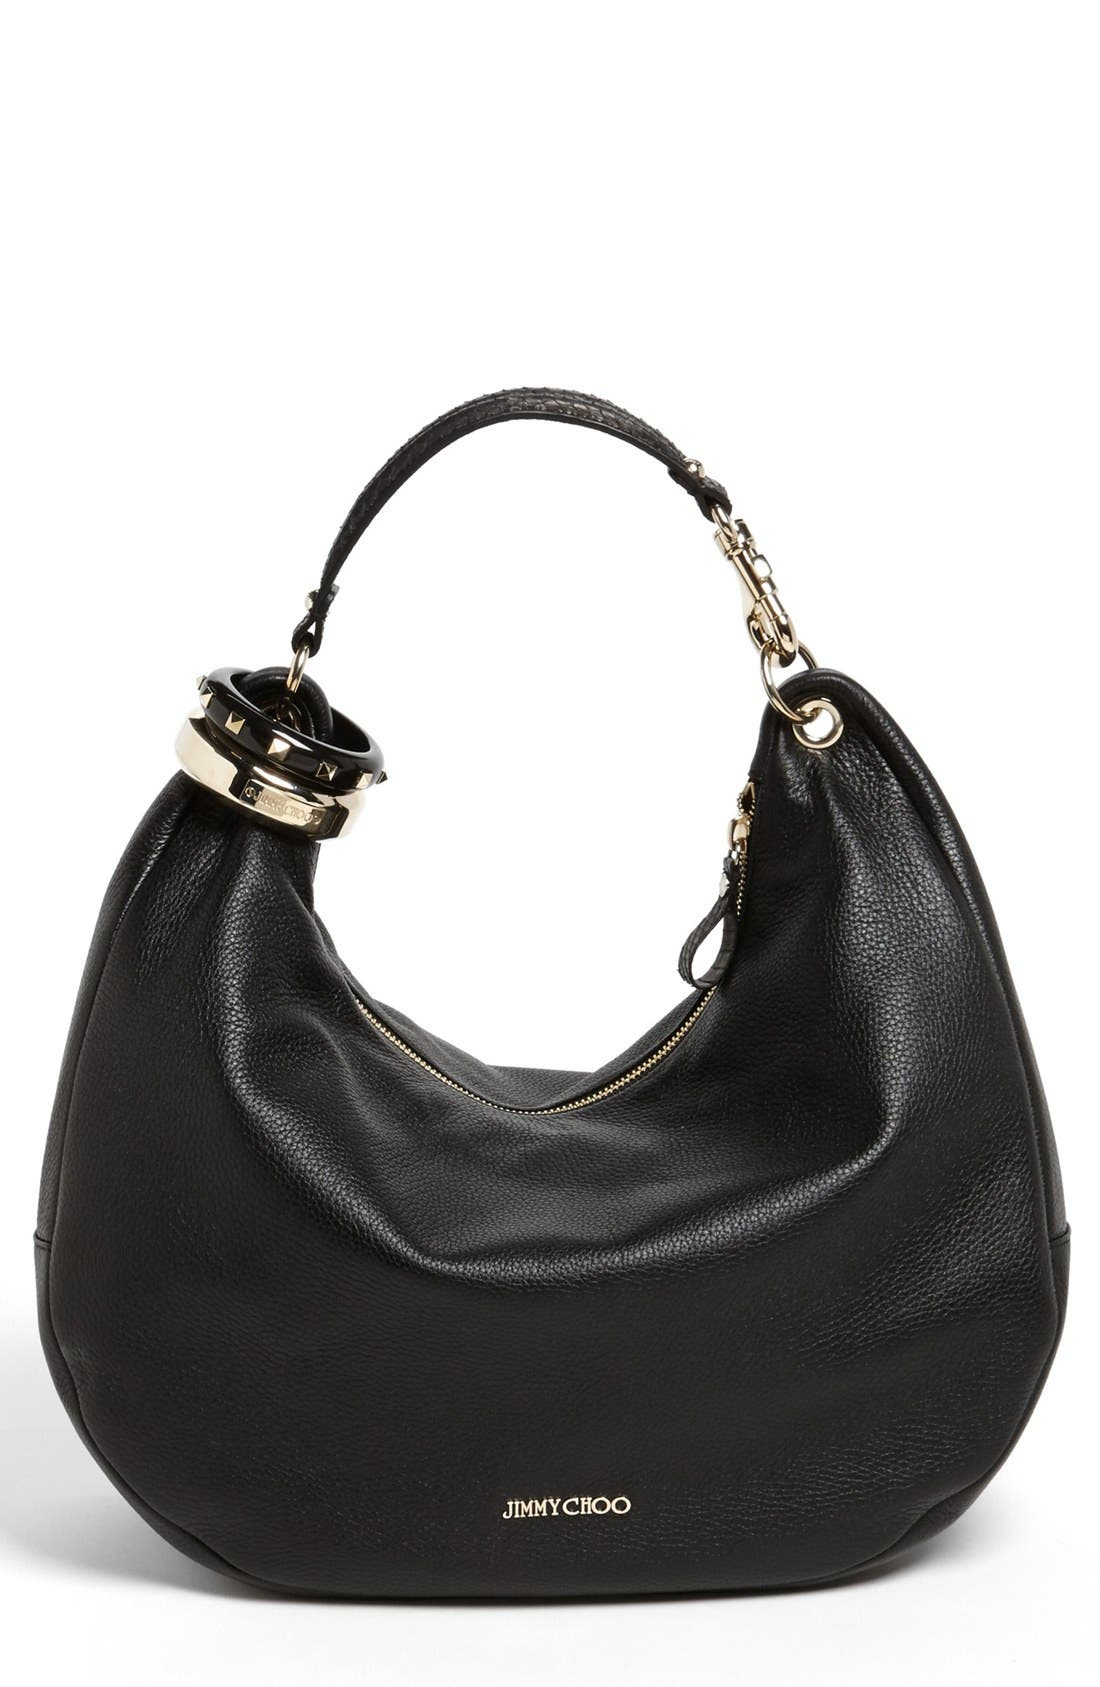 Alternate Image 1 Selected - Jimmy Choo 'Large Solar' Leather Hobo